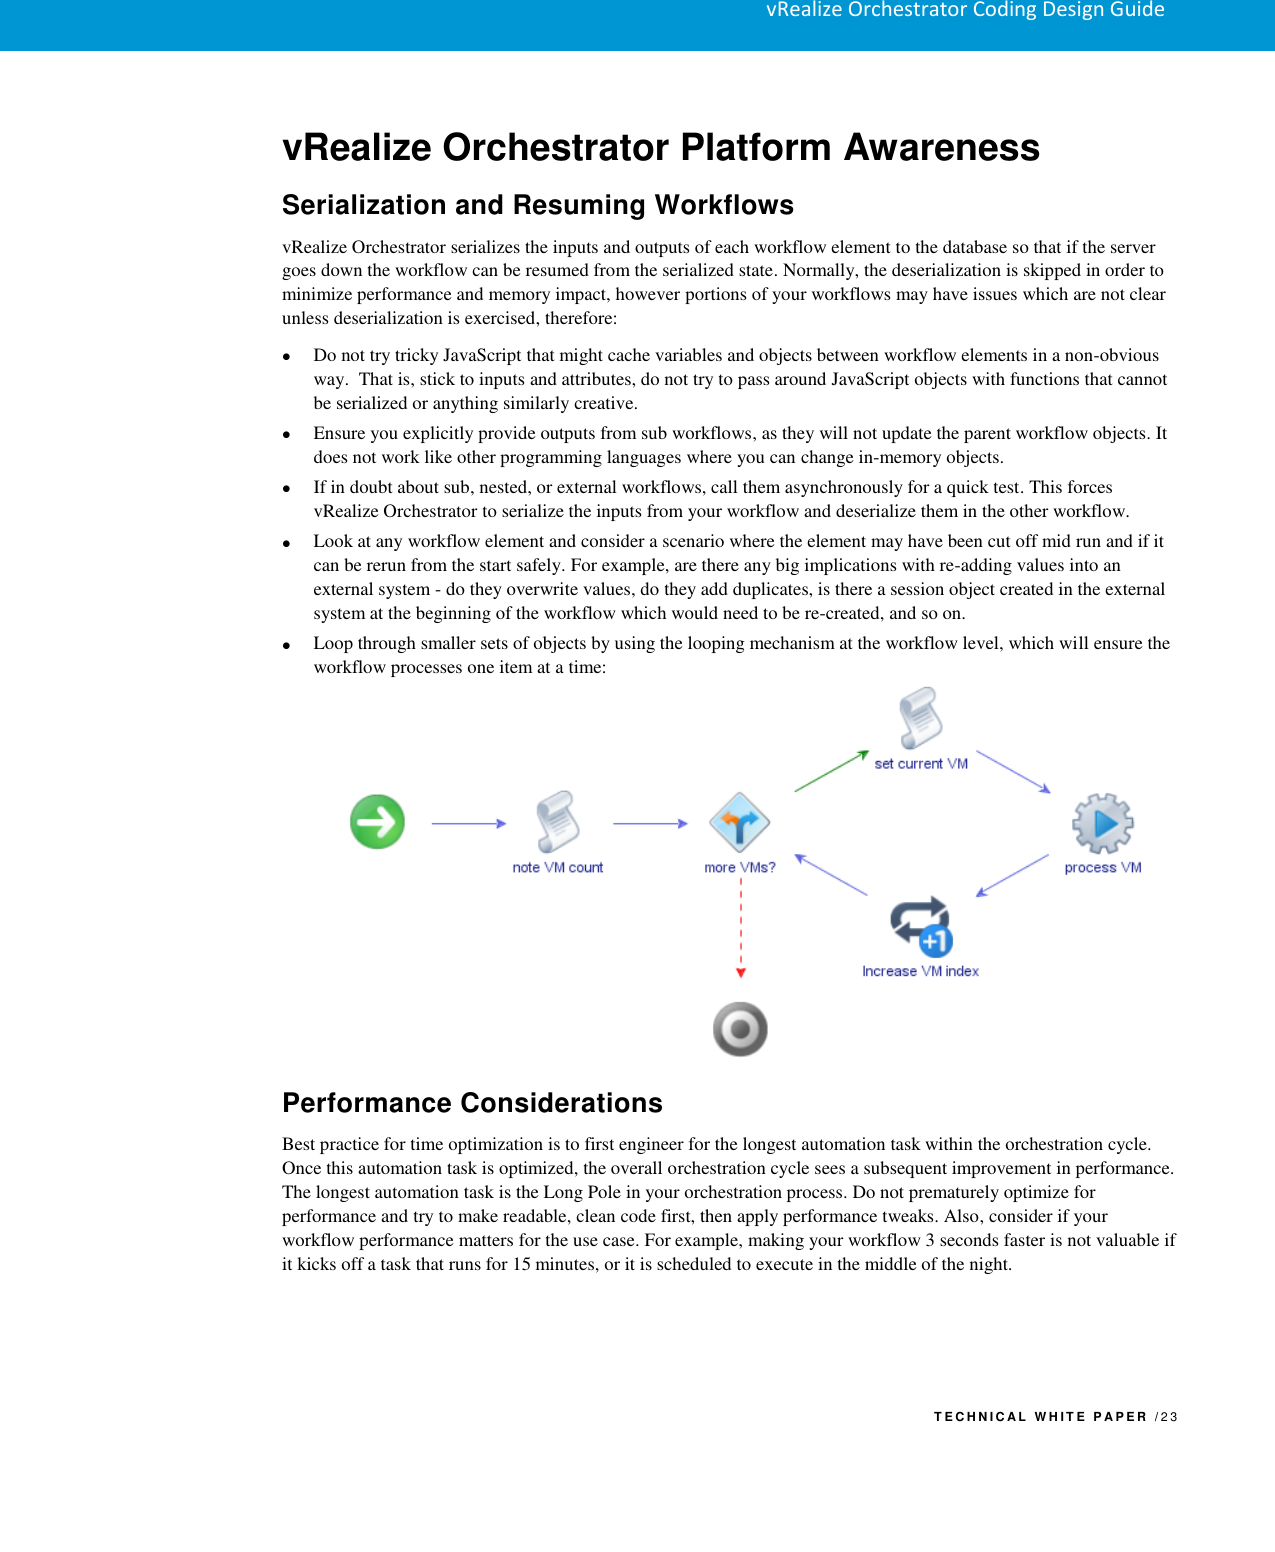 Vmware VRO Coding Design Guide V Realize Orchestrator